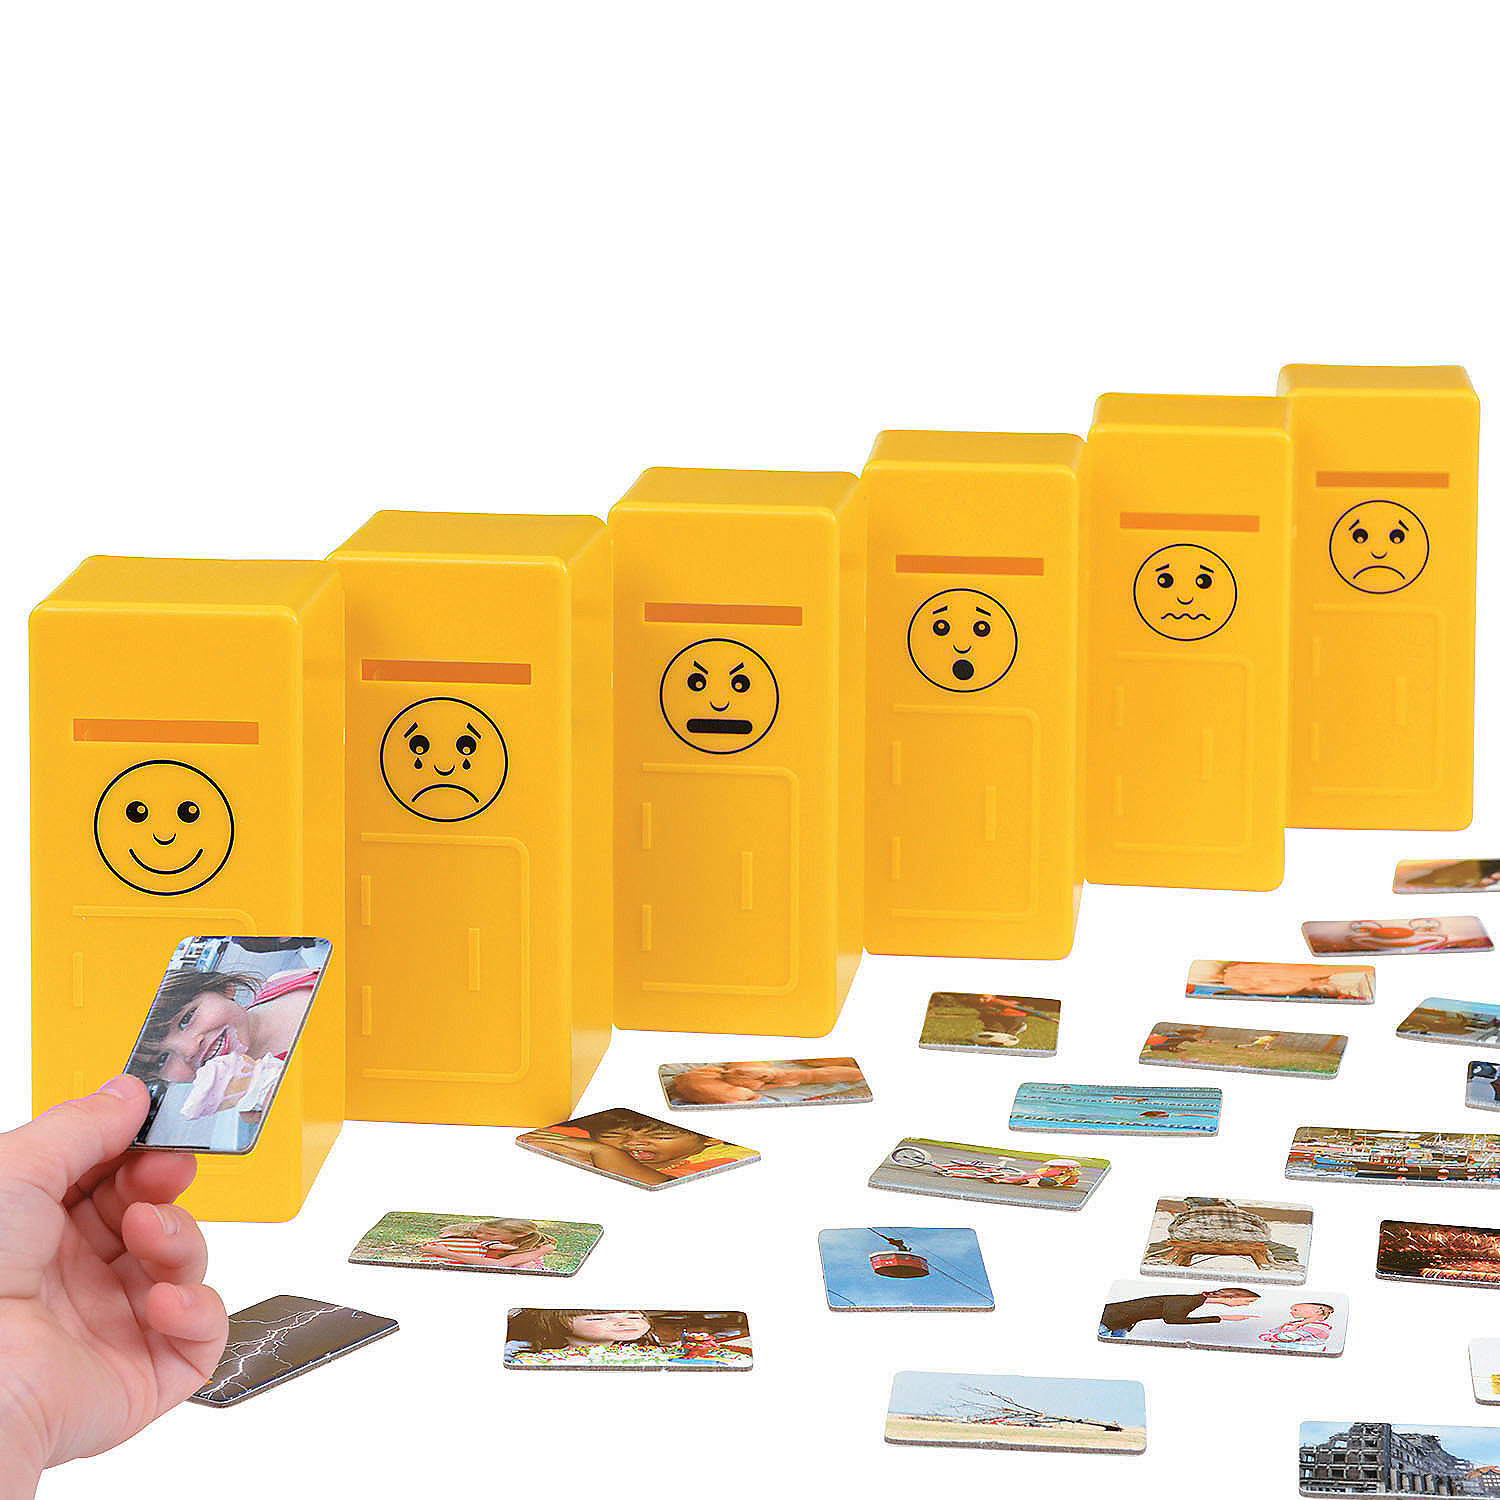 IN-13862108 Emotions Post Sorting Game By Fun Express